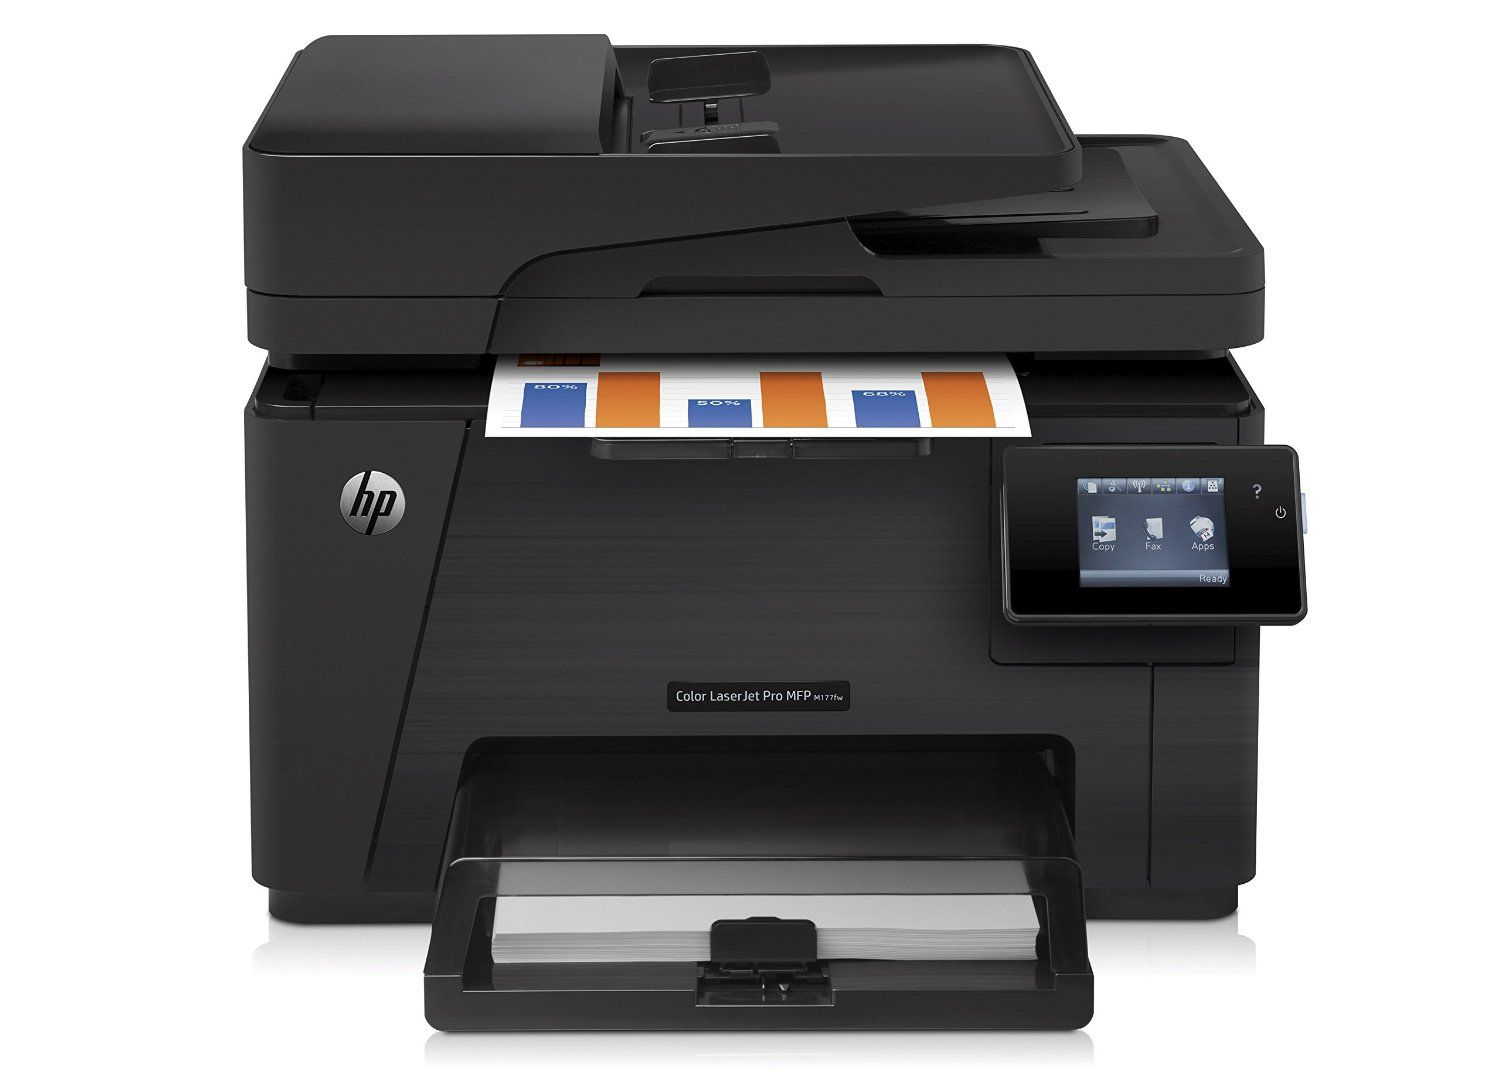 Office depot color printing costs -  Color Laser All In One Printer Copier Scanner Fax Show Your Best Work With Vivid Documents While Keeping Printing Costs Low At Office Depot Officemax